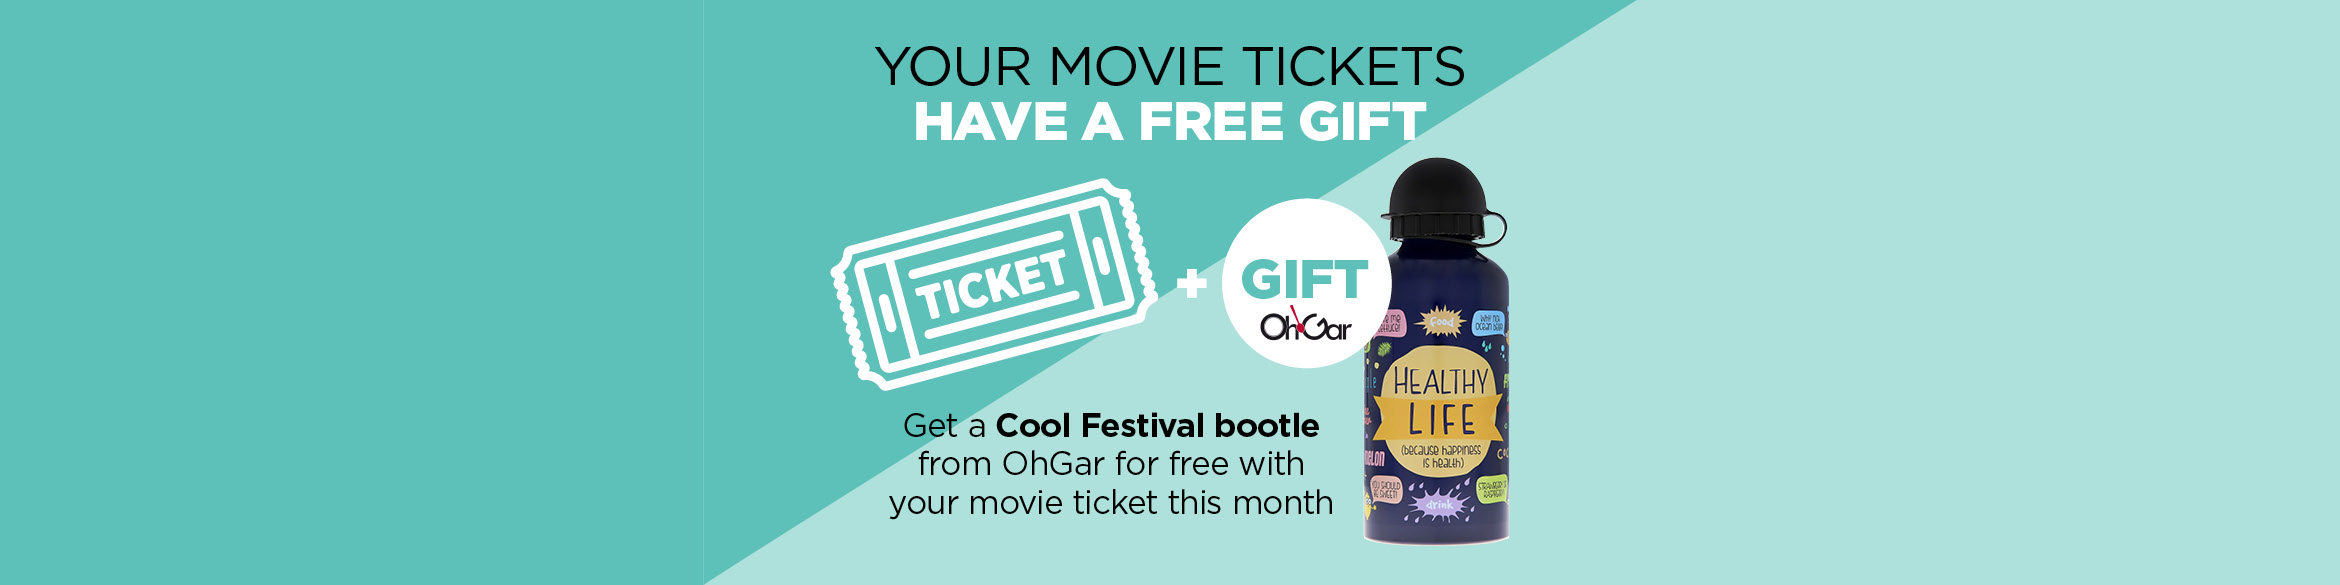 Get a free gift with your movie tickets during March